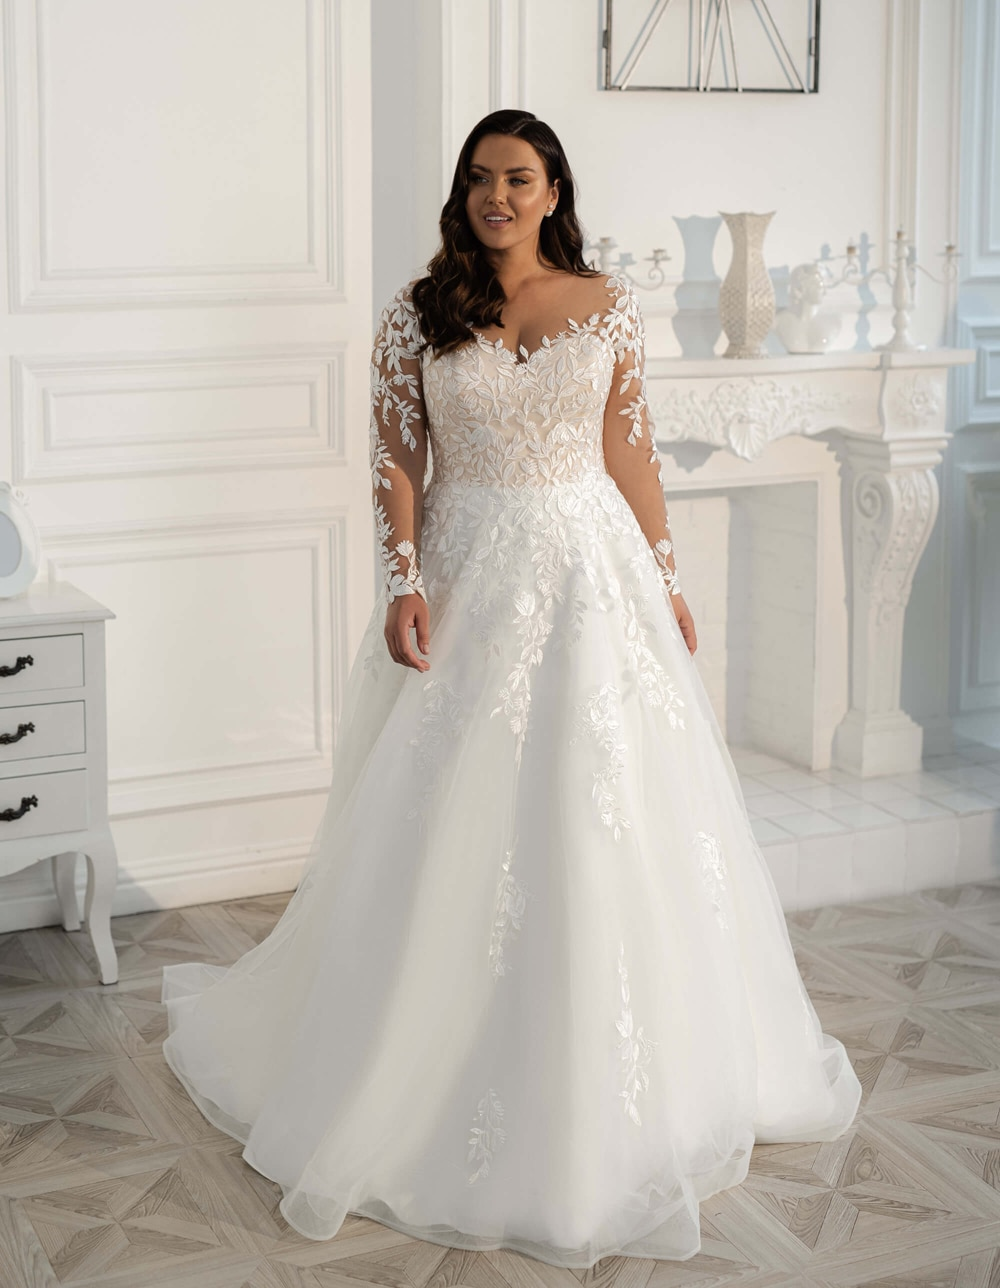 2020 elegant a line wedding dresses illusion v neck appliques sweep train bridal gowns with beaded sash custom made 2021 New Plus Size Wedding Dresses Long Sleeves Sweep Train V-Neck A-line Custom Made Lace Appliques Bridal Gowns Robe De Mariee